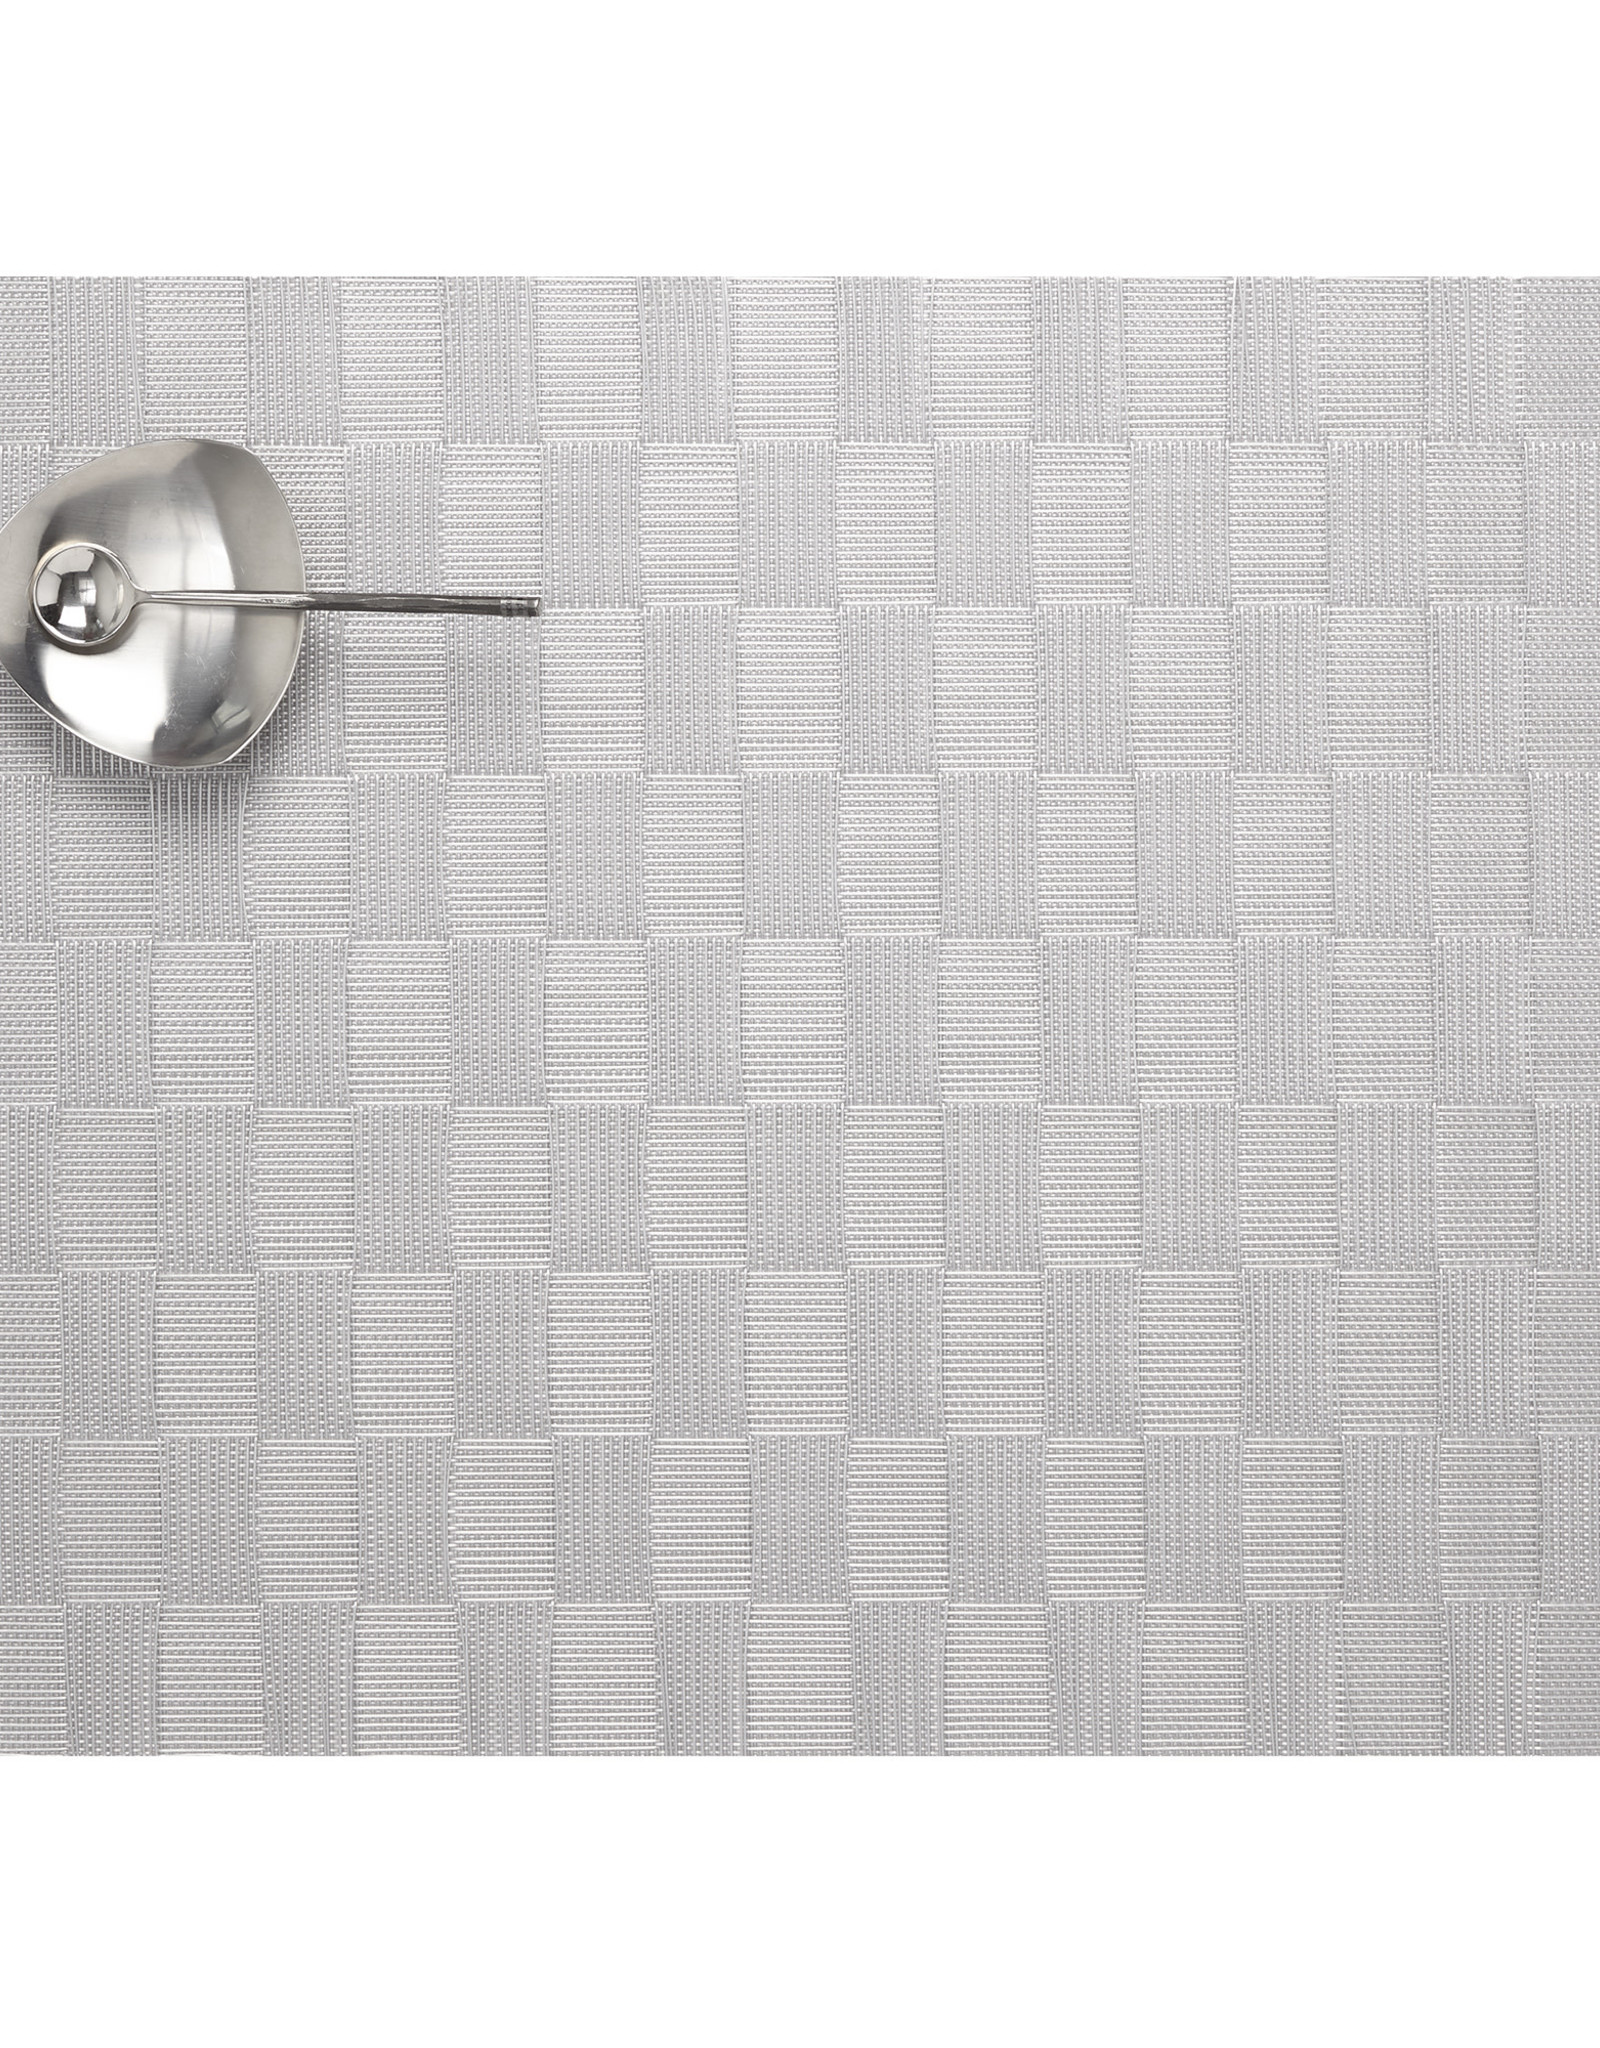 Chilewich Domino Tablemat 14x19, SILVER